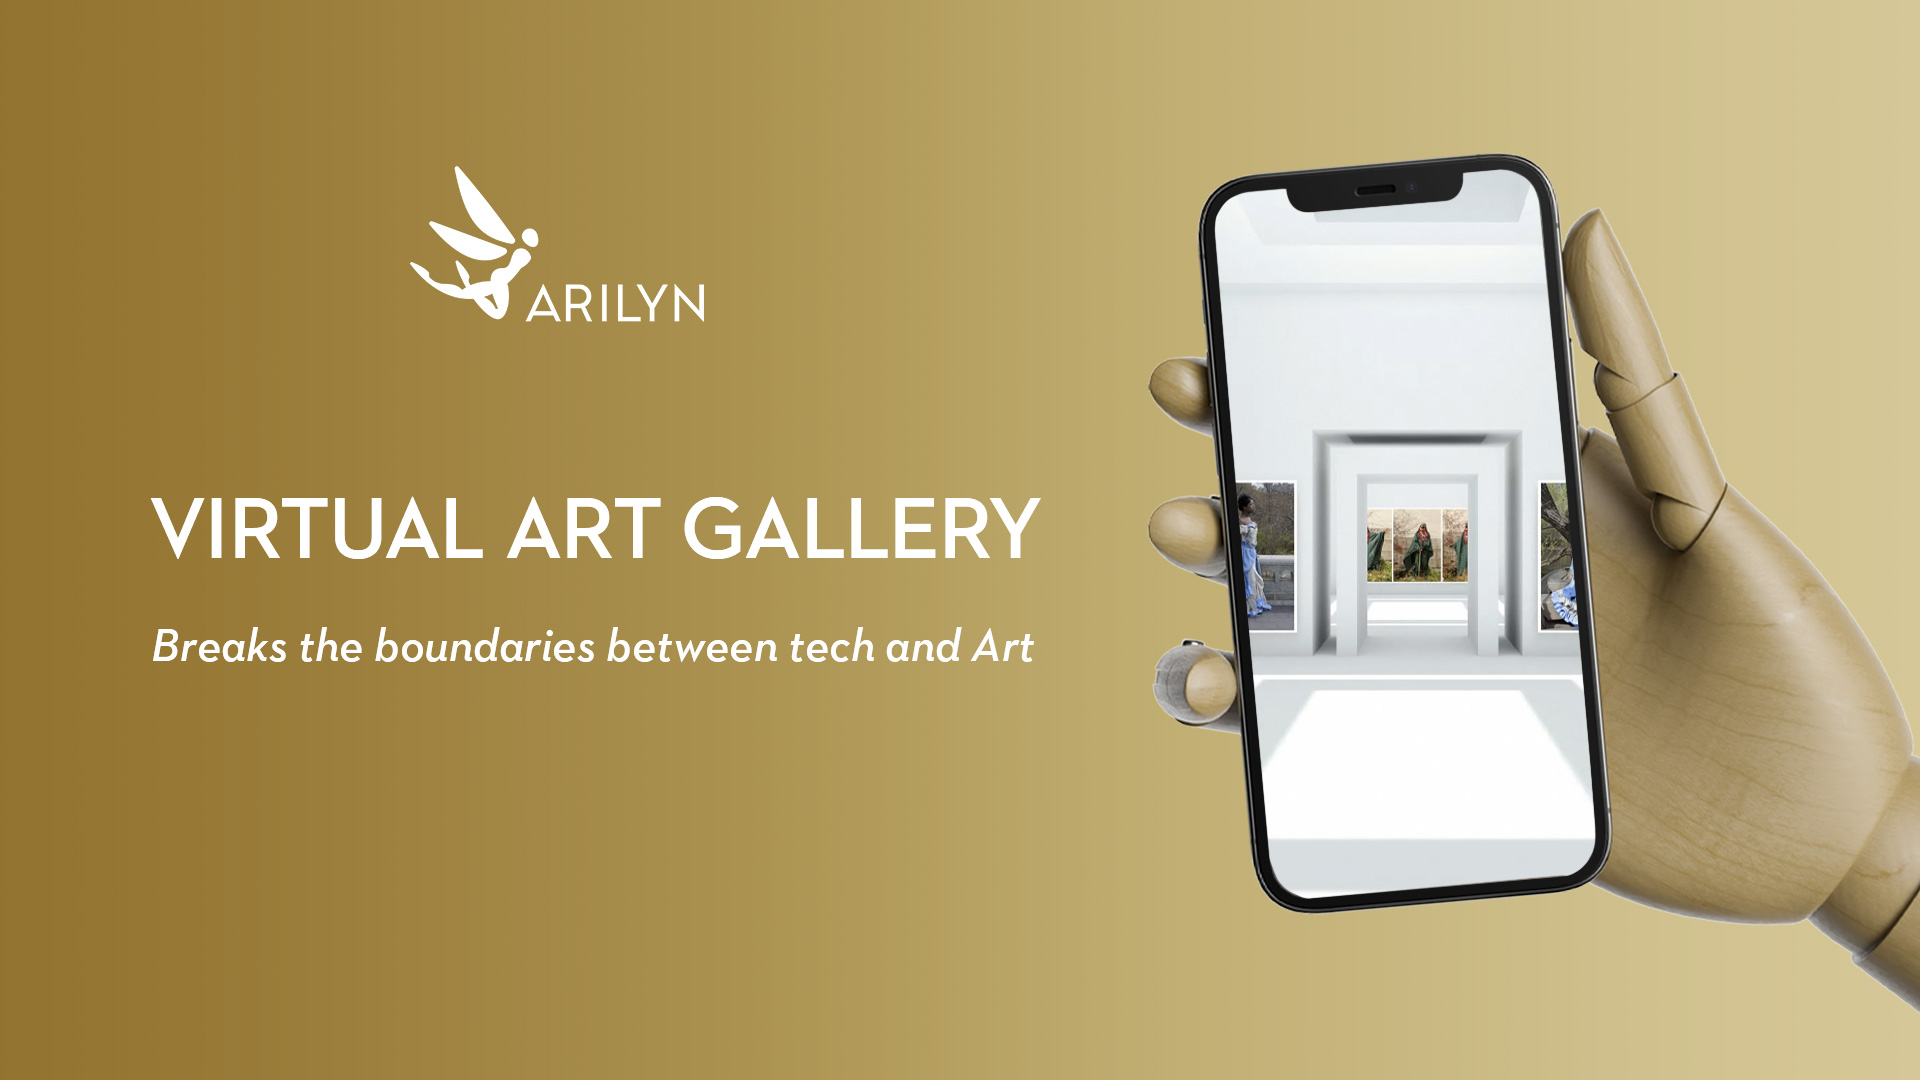 Extended reality breaks the boundaries between technology and fine art